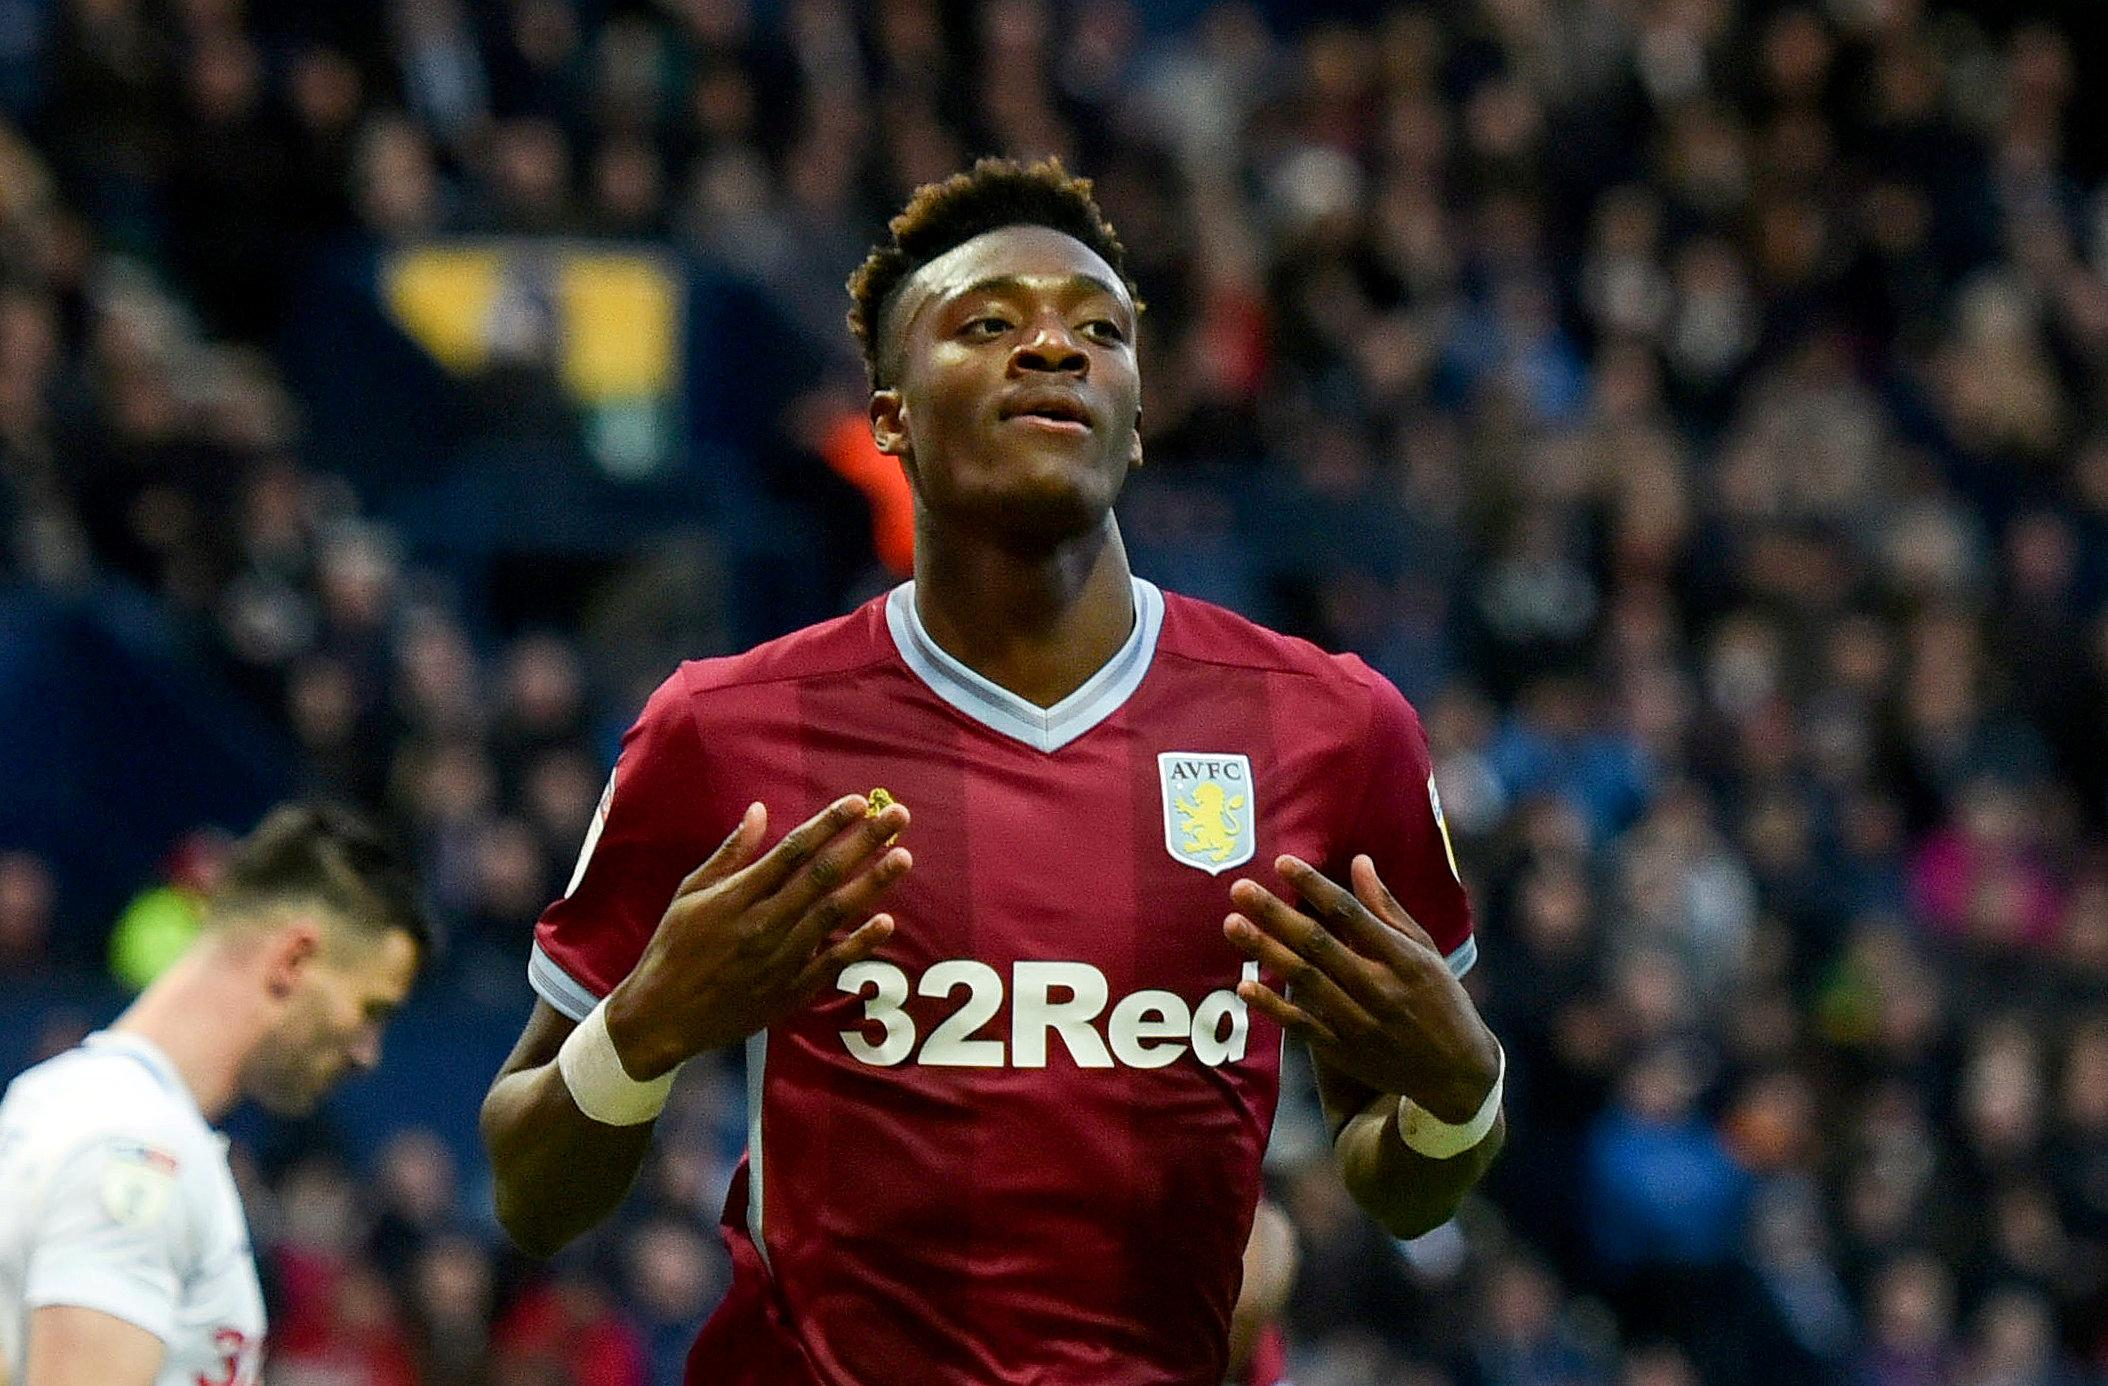 Chelsea's Tammy Abraham 'not for sale' amid Wolves interest